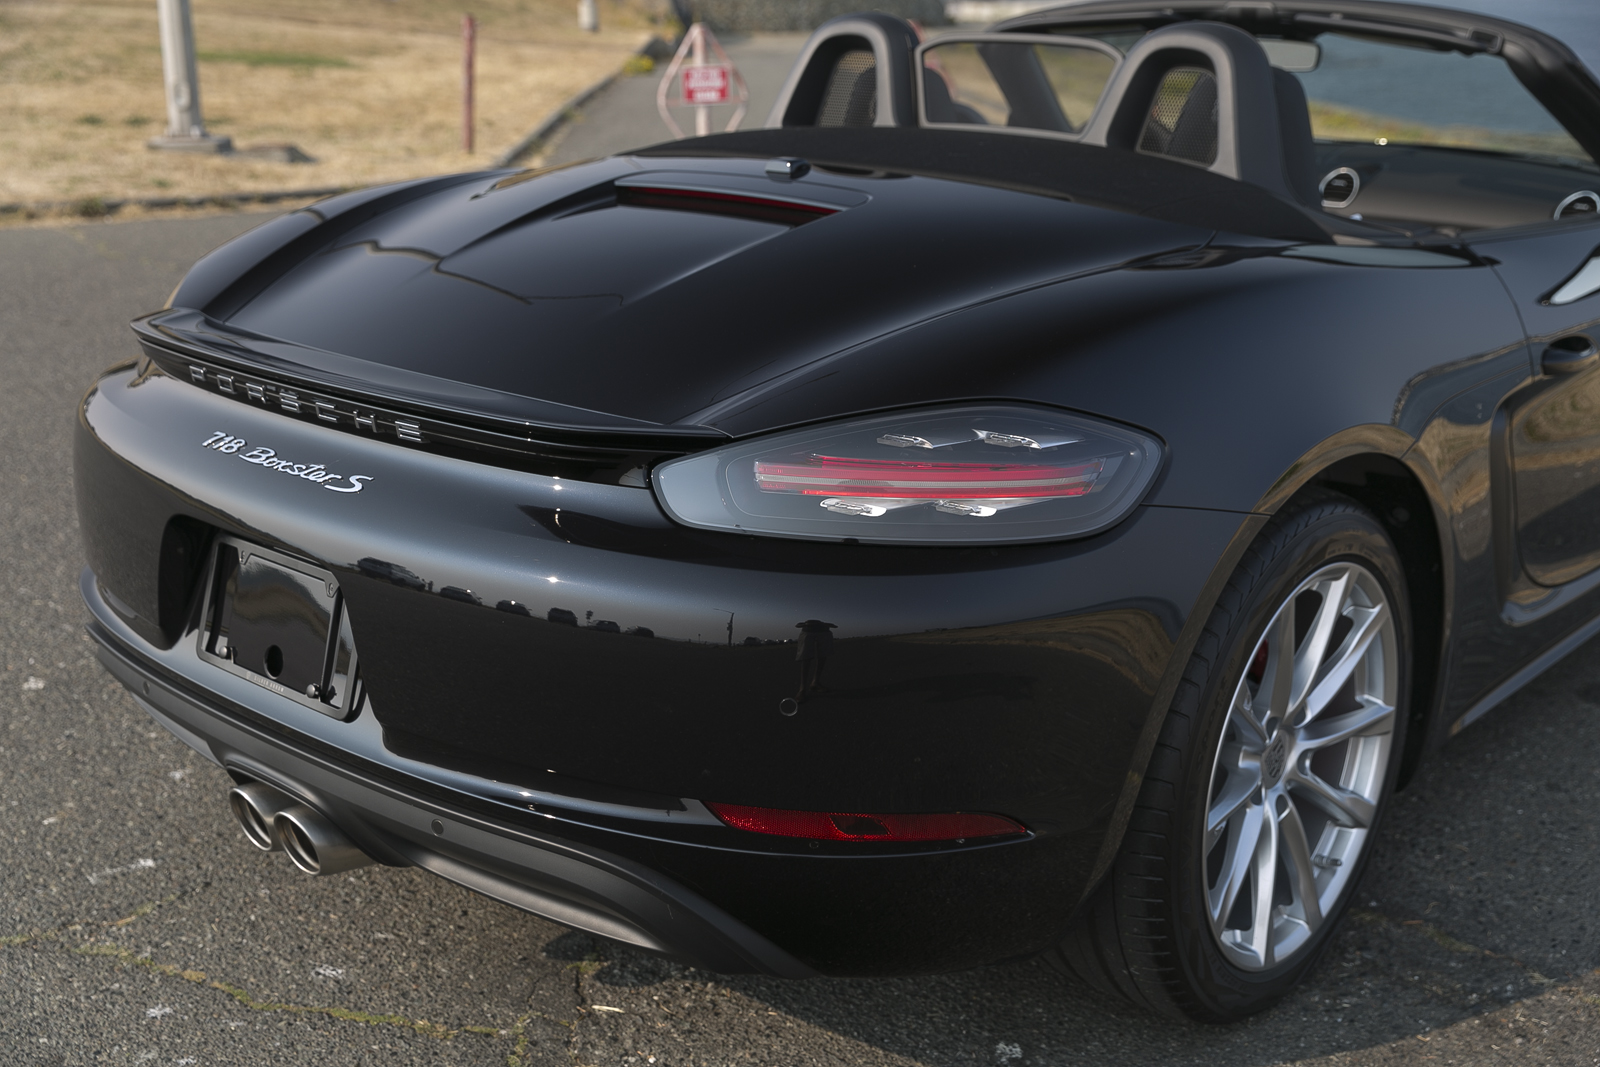 2017 Porsche 718 Boxster S PDK for sale